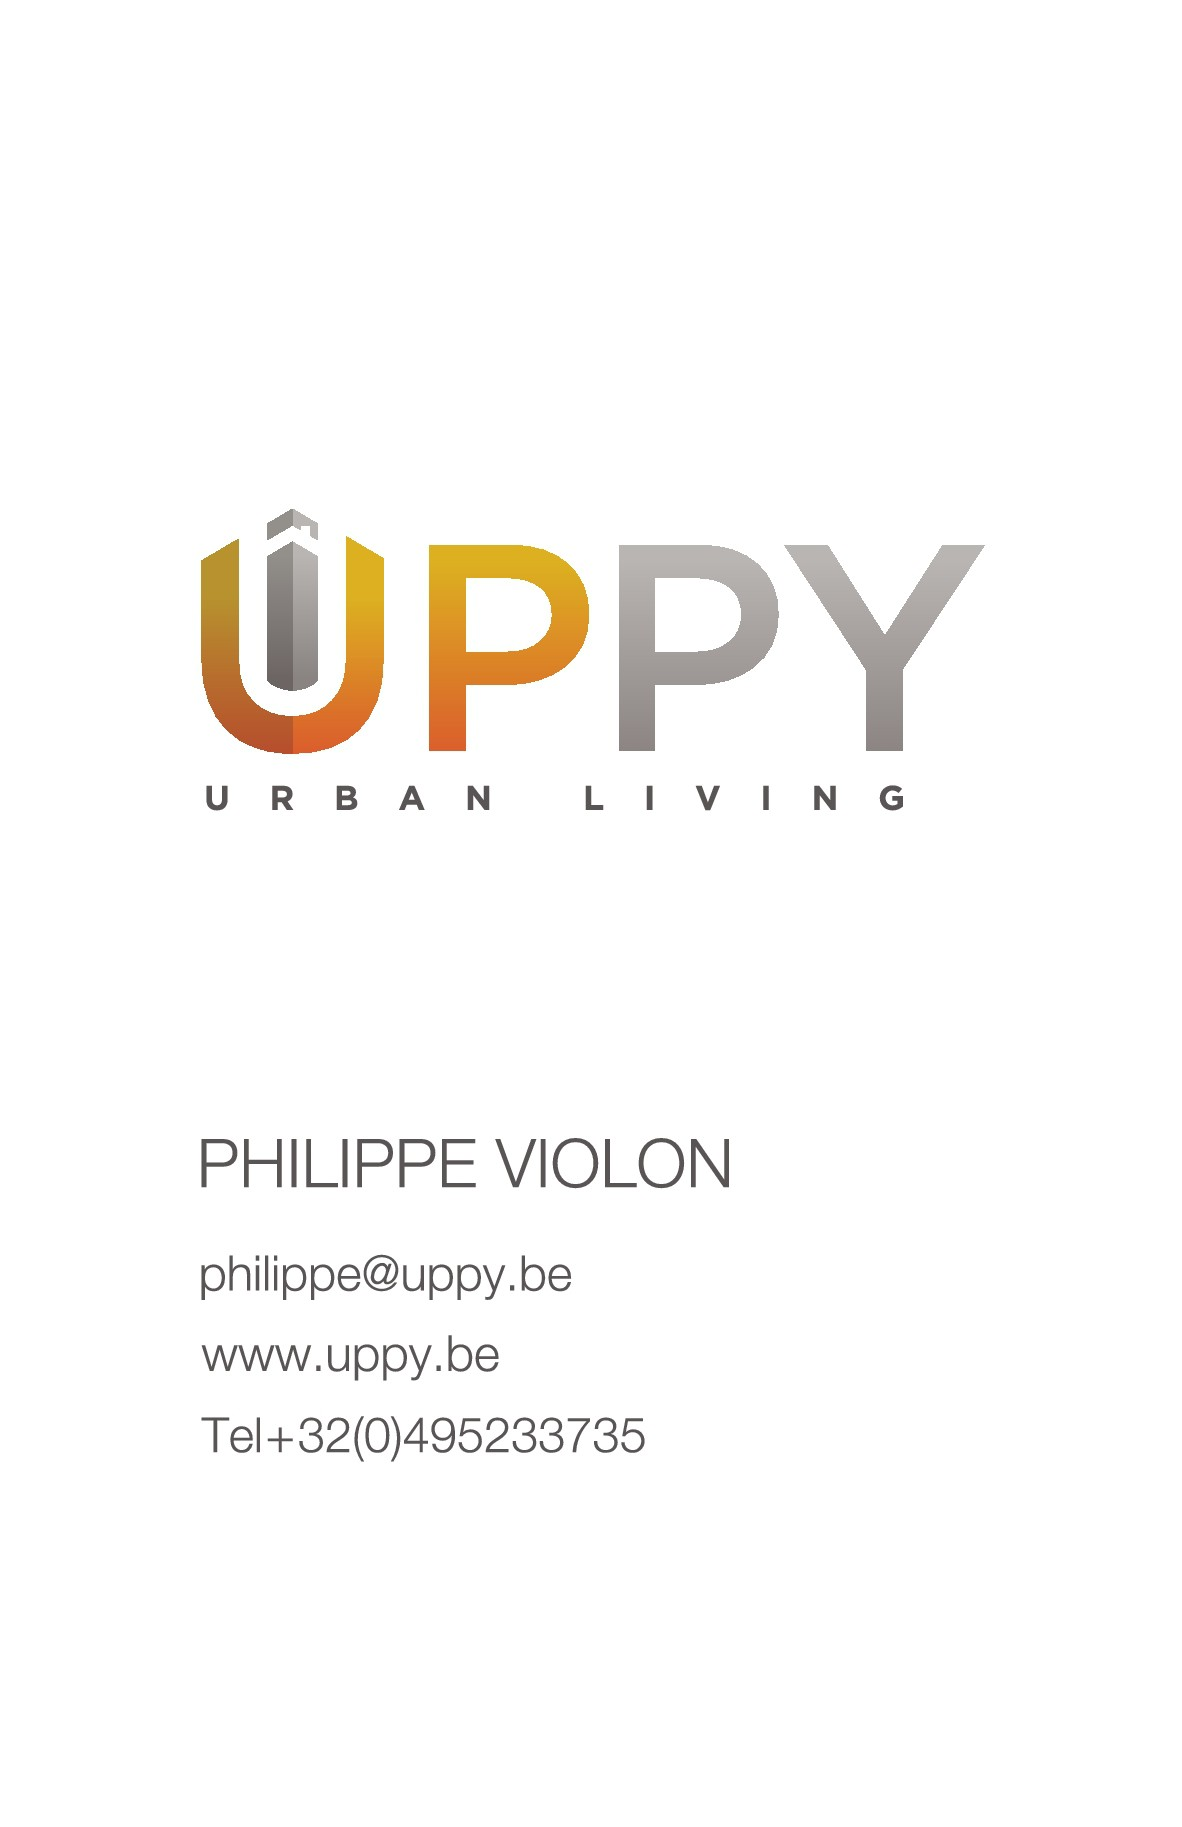 New logo for Uppy and double side business card